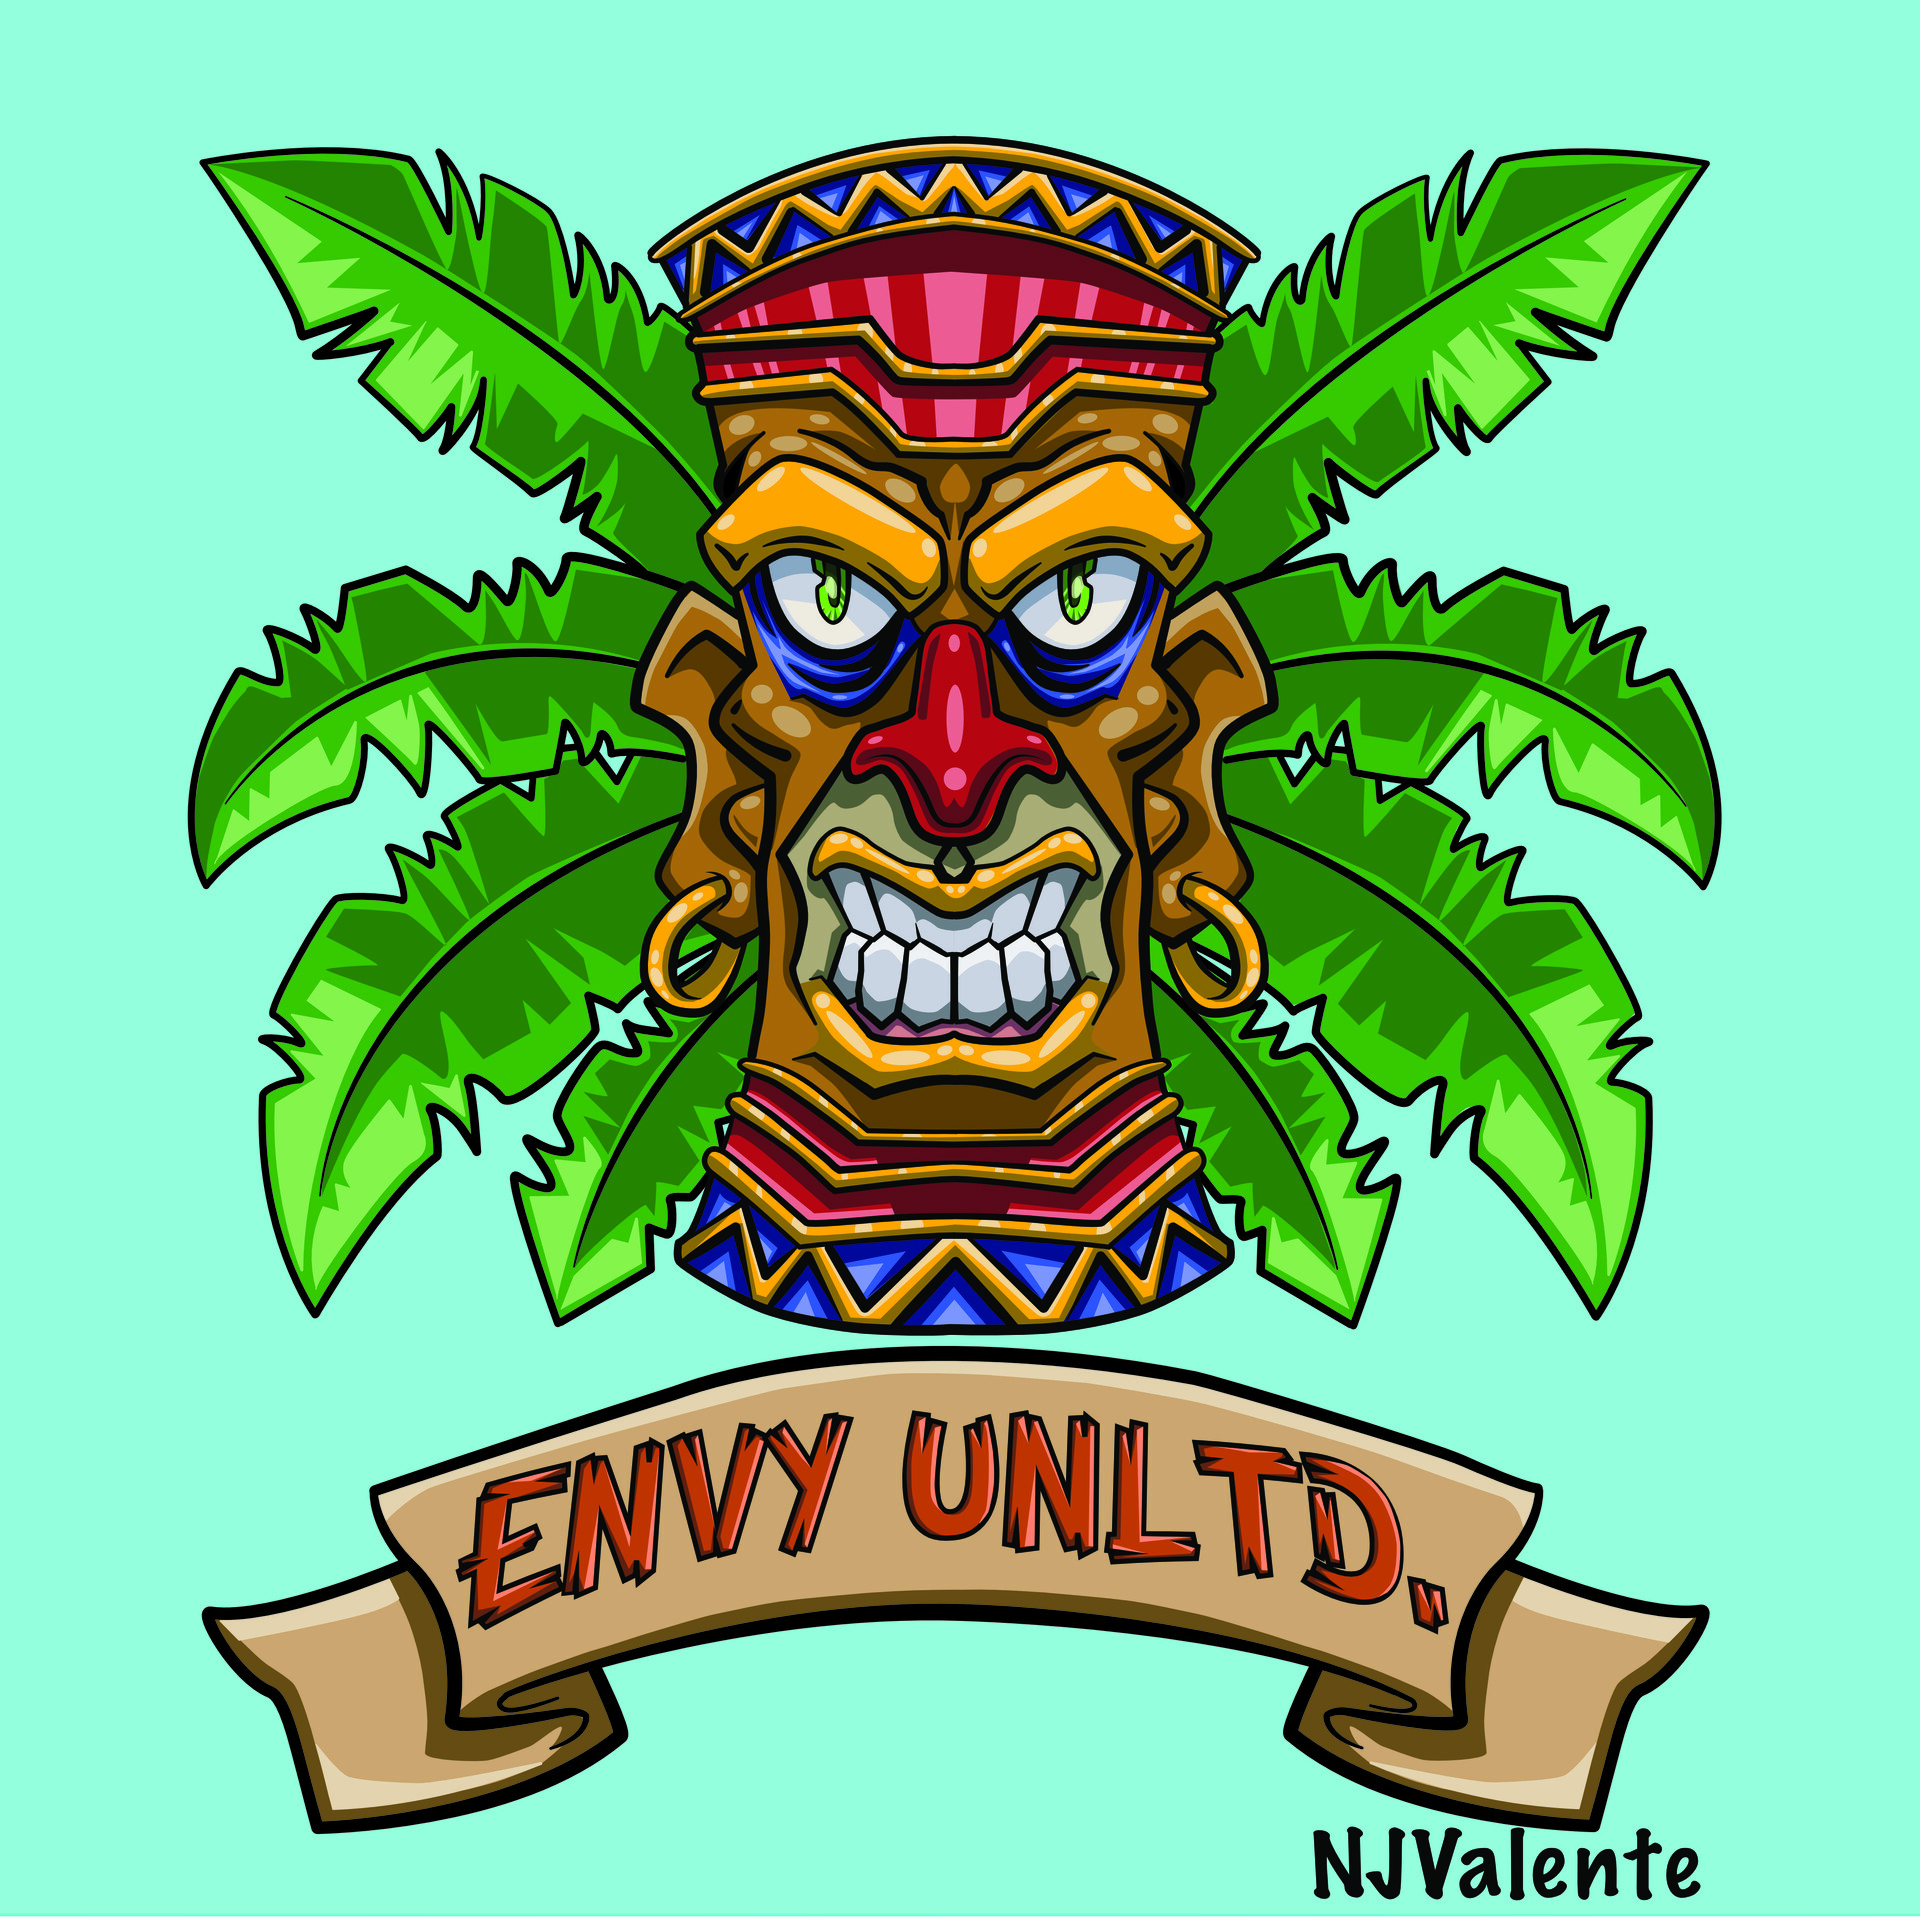 Tiki eNVy Unltd. T-shirt design